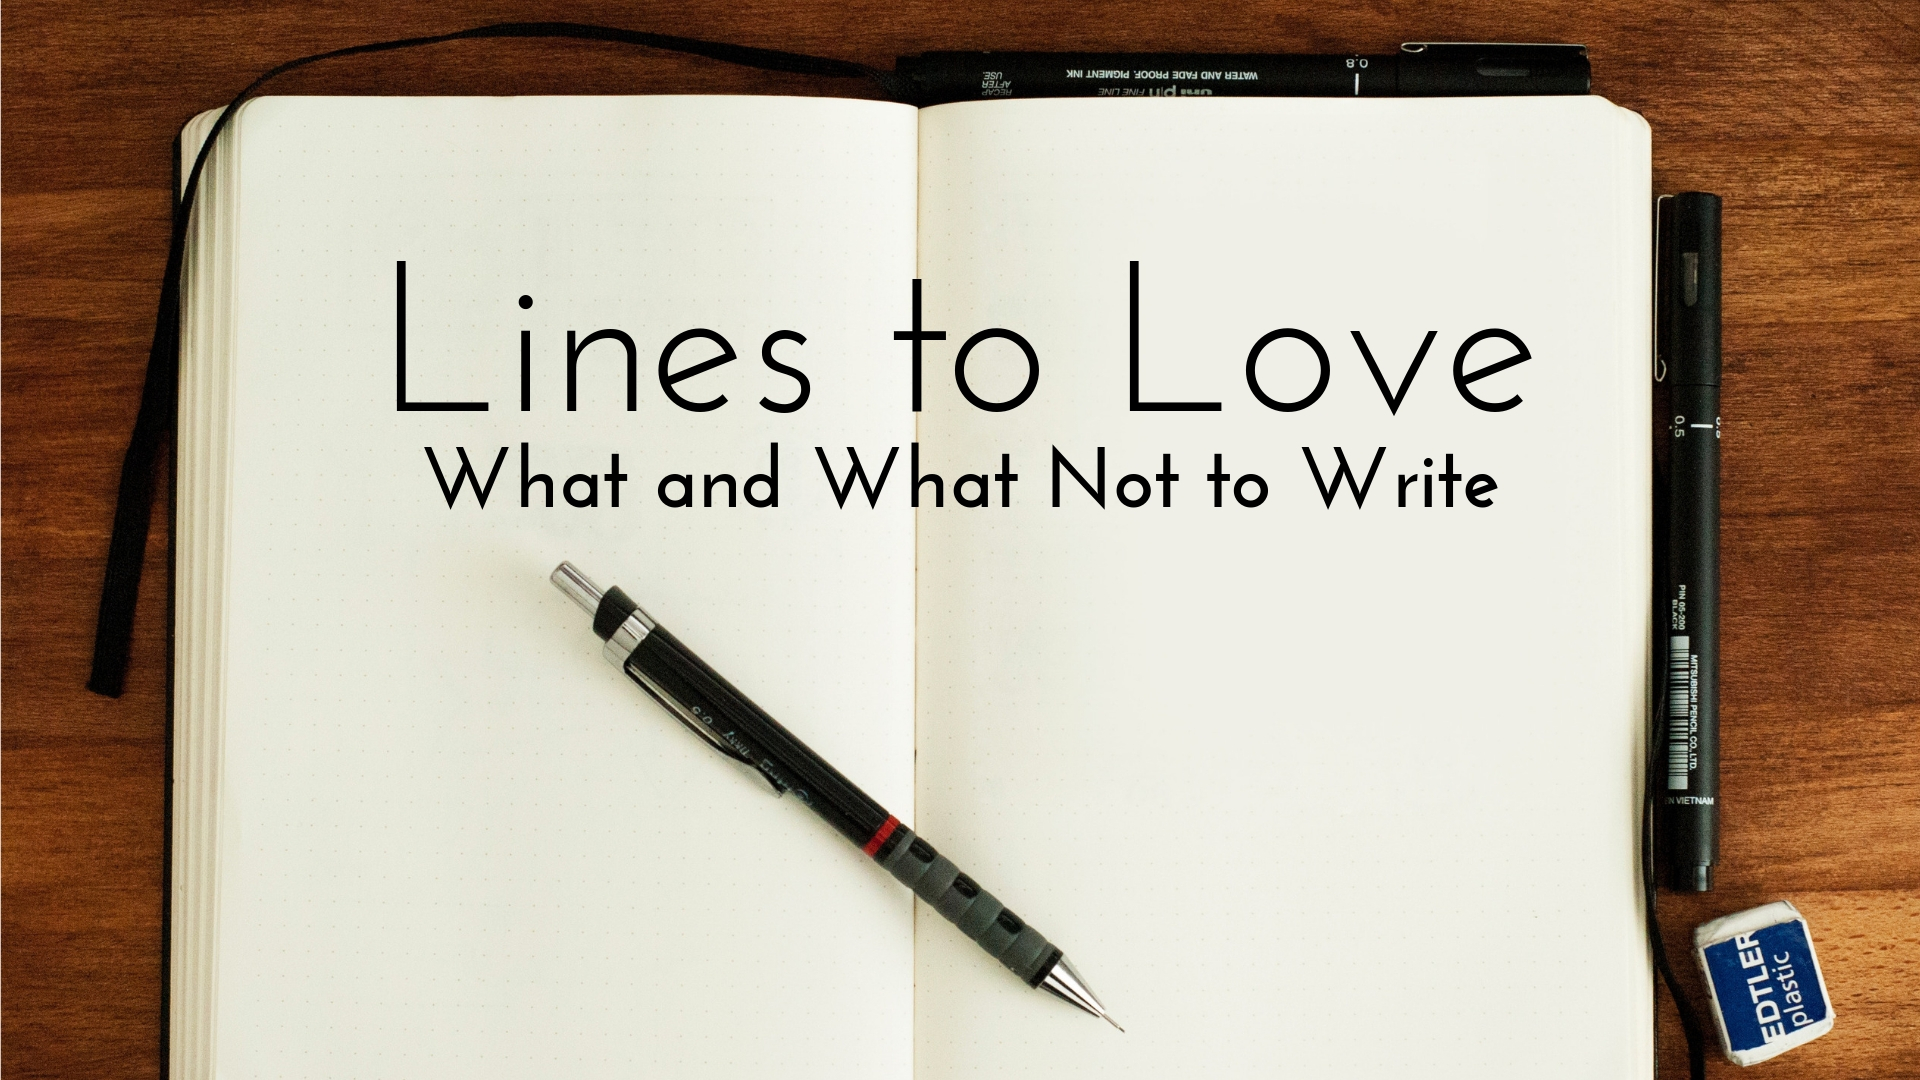 banner-lines-to-love-what-to-write-01.jpg